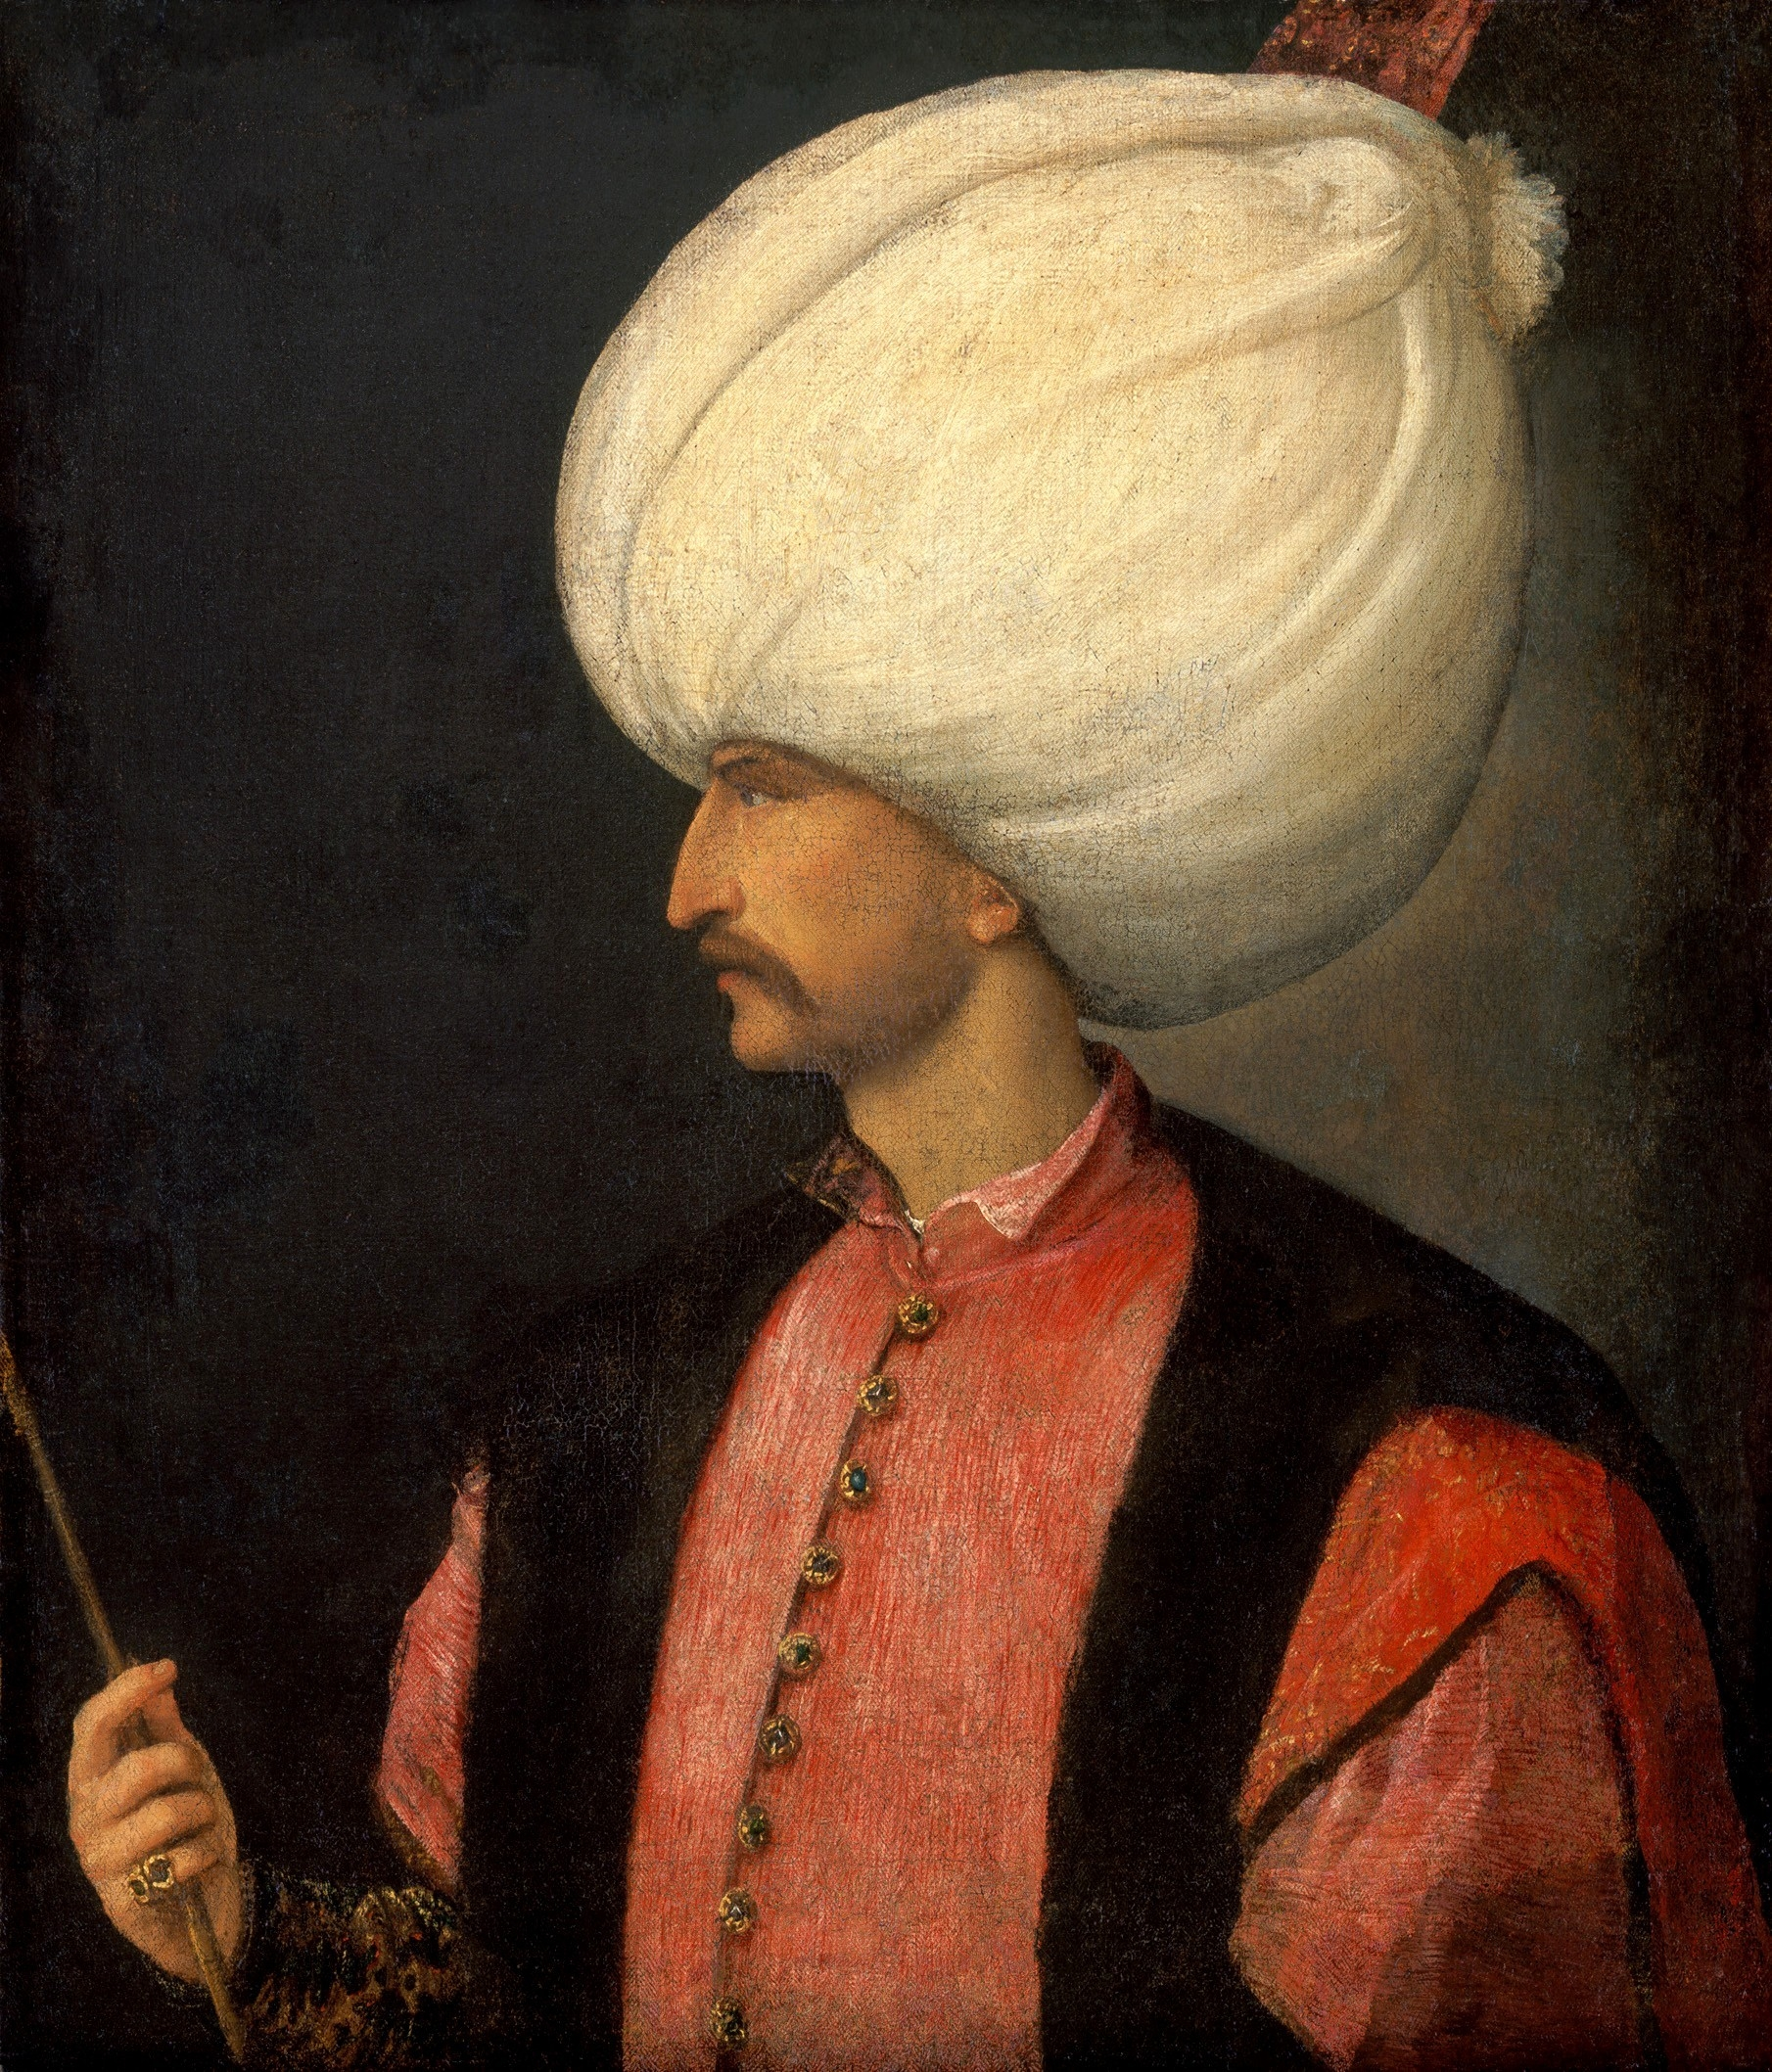 Suleiman the Magnificant from Wikipedia